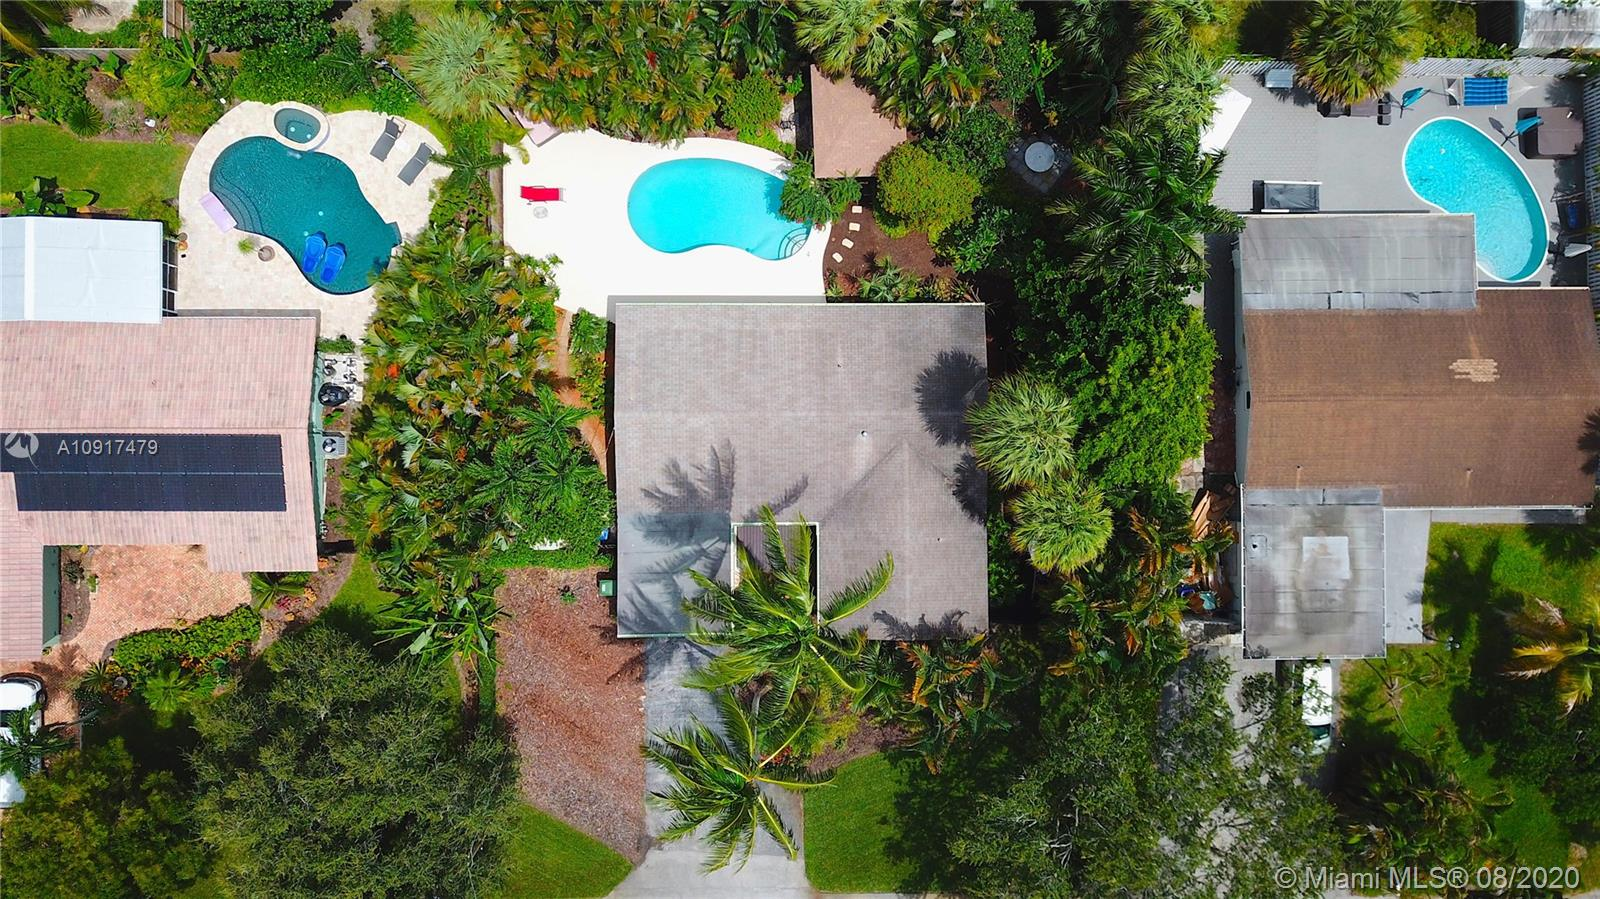 Stunning 3/2 single family home with pool sitting on a 11,000 sq foot lot! Ample room for parking boats, Rv or whatever other toys you may have. Situated close to downtown Fort Lauderdale and Las Olas on a quiet dead end street. Home has an open concept with carport and separate laundry room. Roof, AC, electrical all in great shape and relatively new. Home boasts a recently upgraded pool, hot tub, tiki bar and storage shed. Full price offer owner says he will throw in his 24 ft center counsel ! Boat ramps and parks all within walking distance. This property will not last long so please inquire today! Make sure to check out virtual tour of this property ! Owner occupied but flexible for showings. Preferably 24 hour notice.